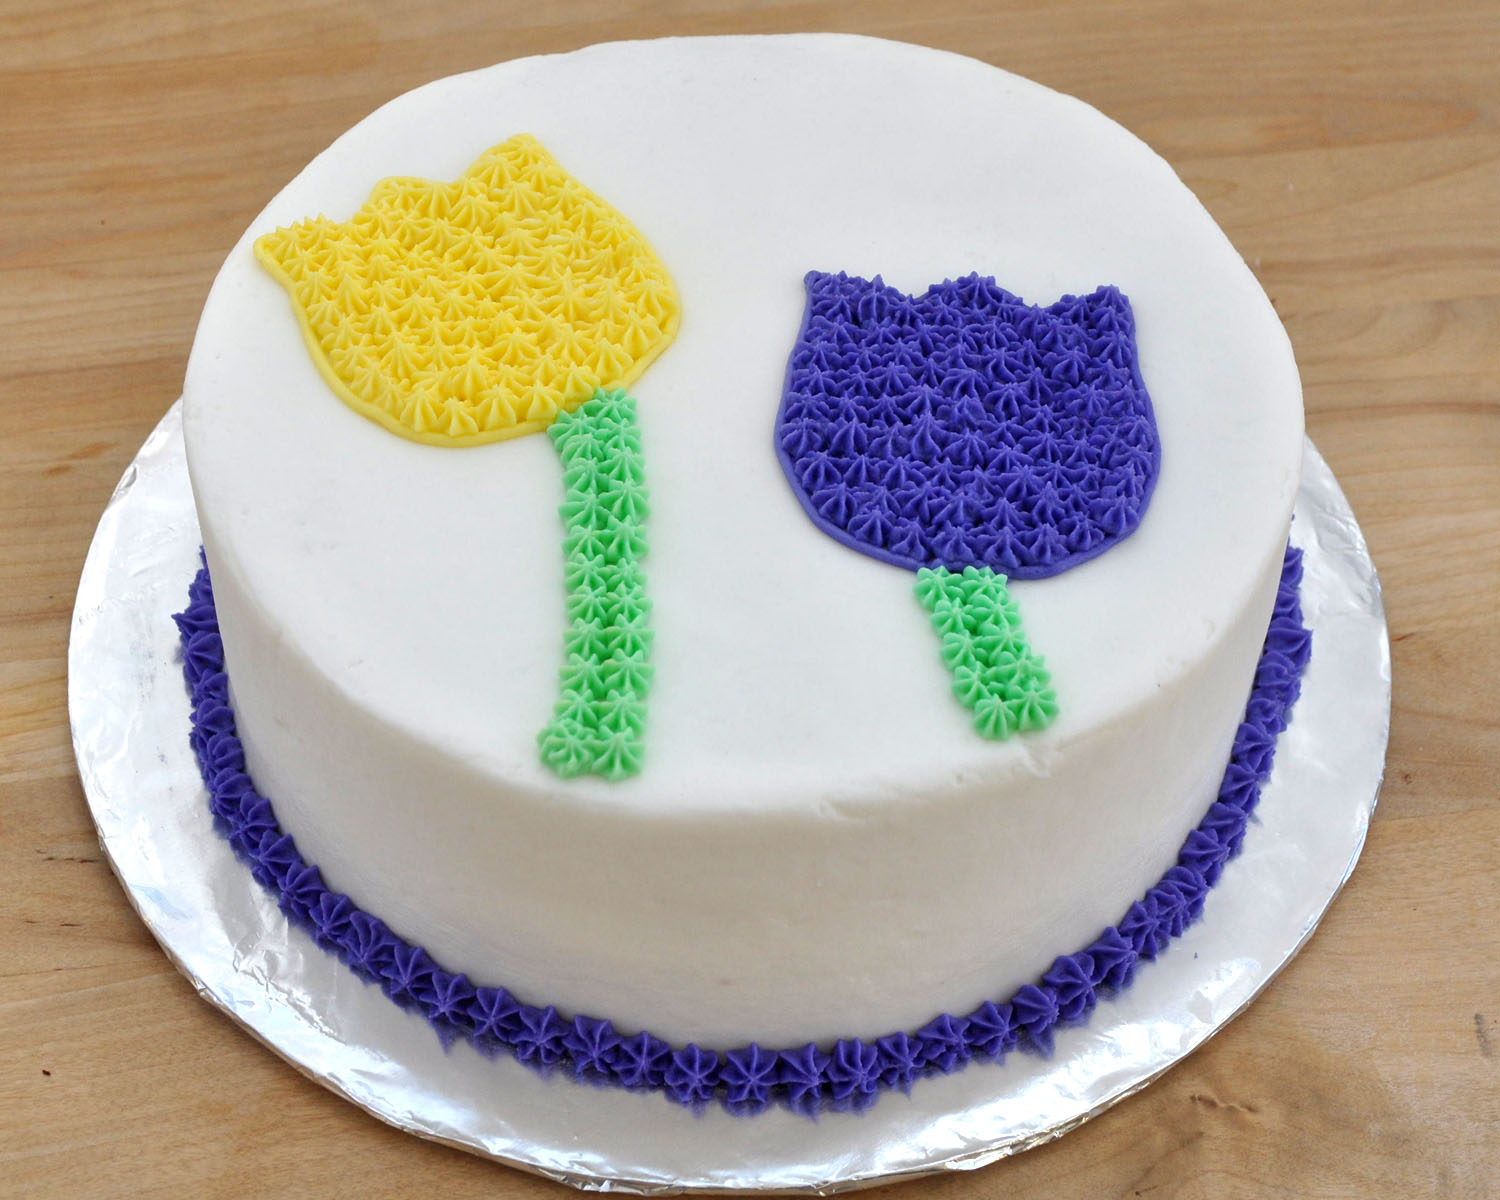 Birthday Cake Decor Ideas : Beki Cook s Cake Blog: Cake Decorating 101 - Easy Birthday ...